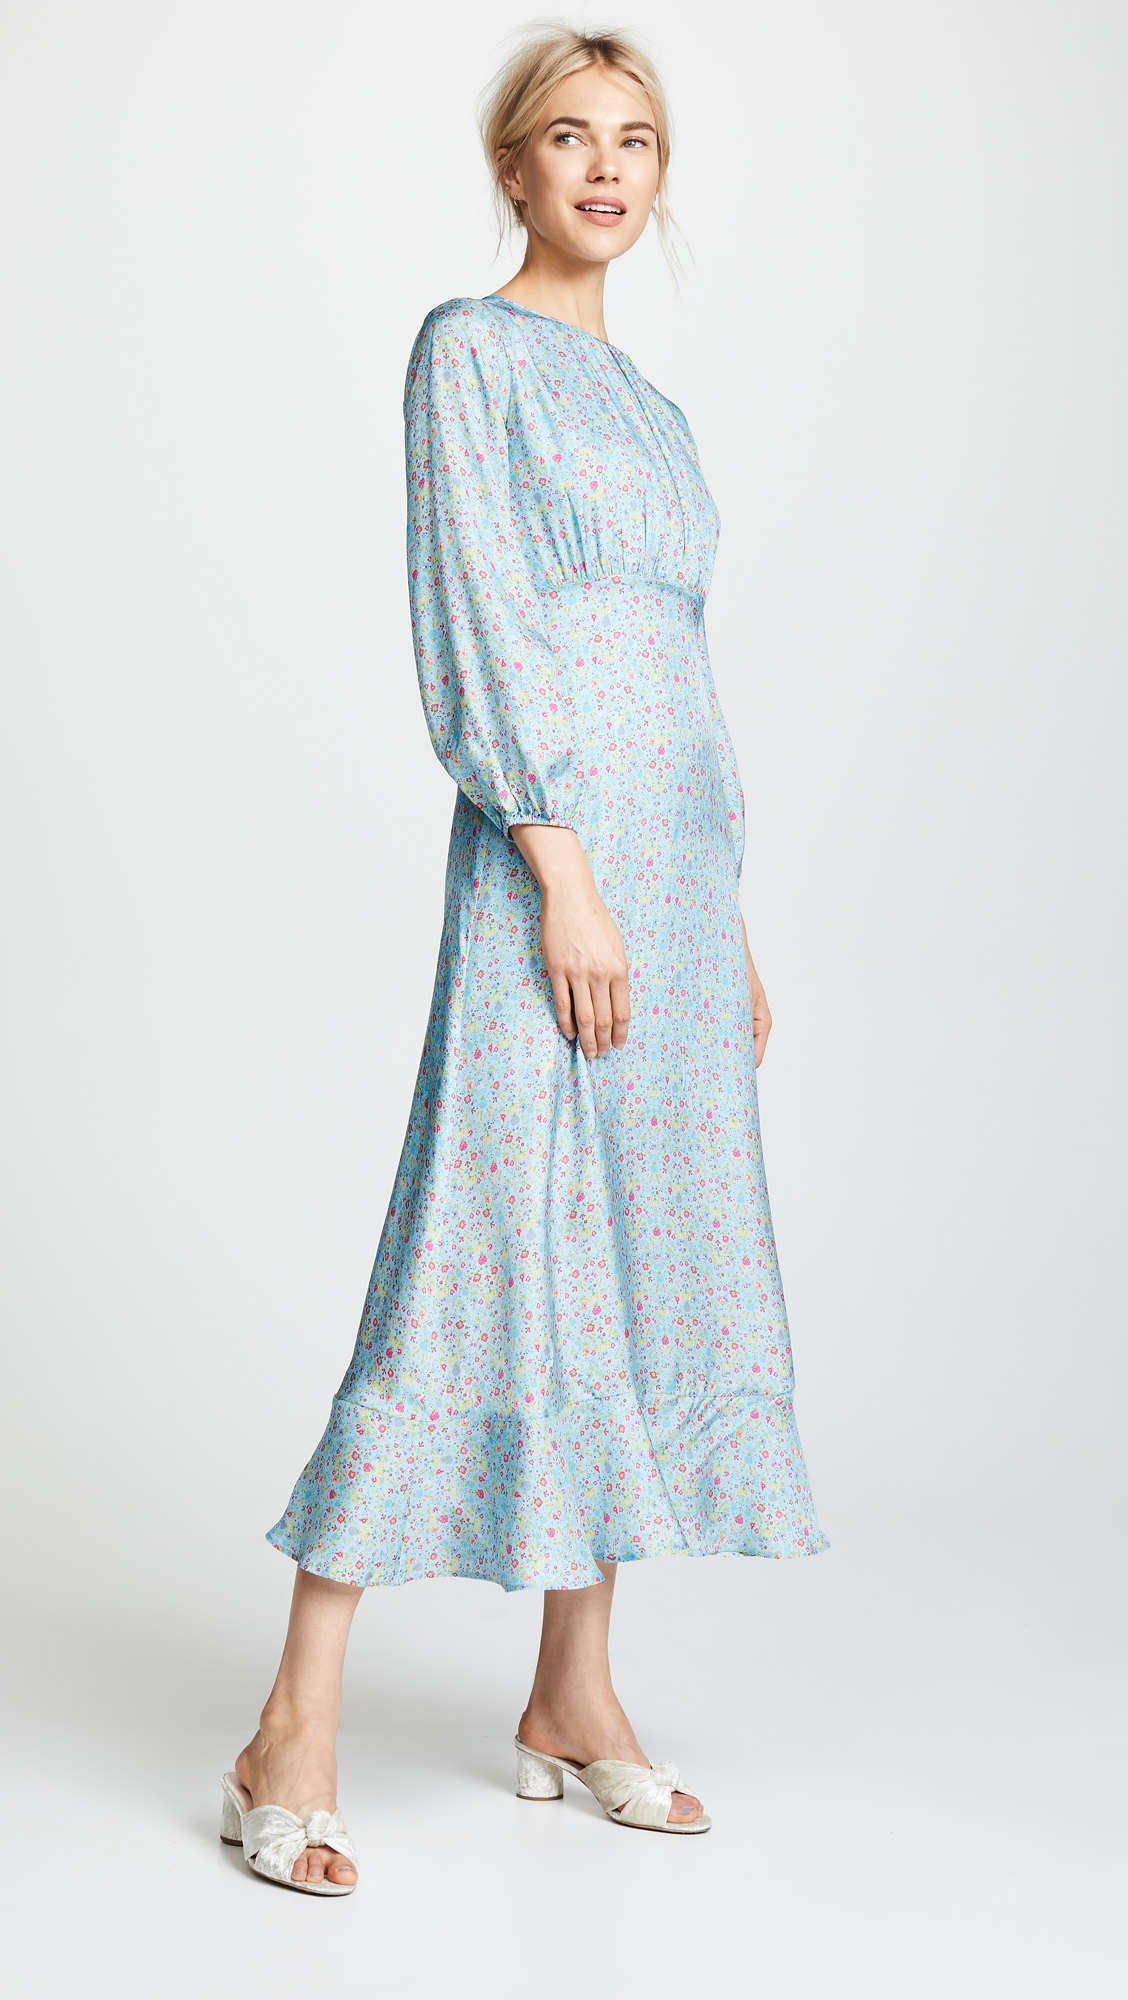 light blue long sleeved engagement party dress